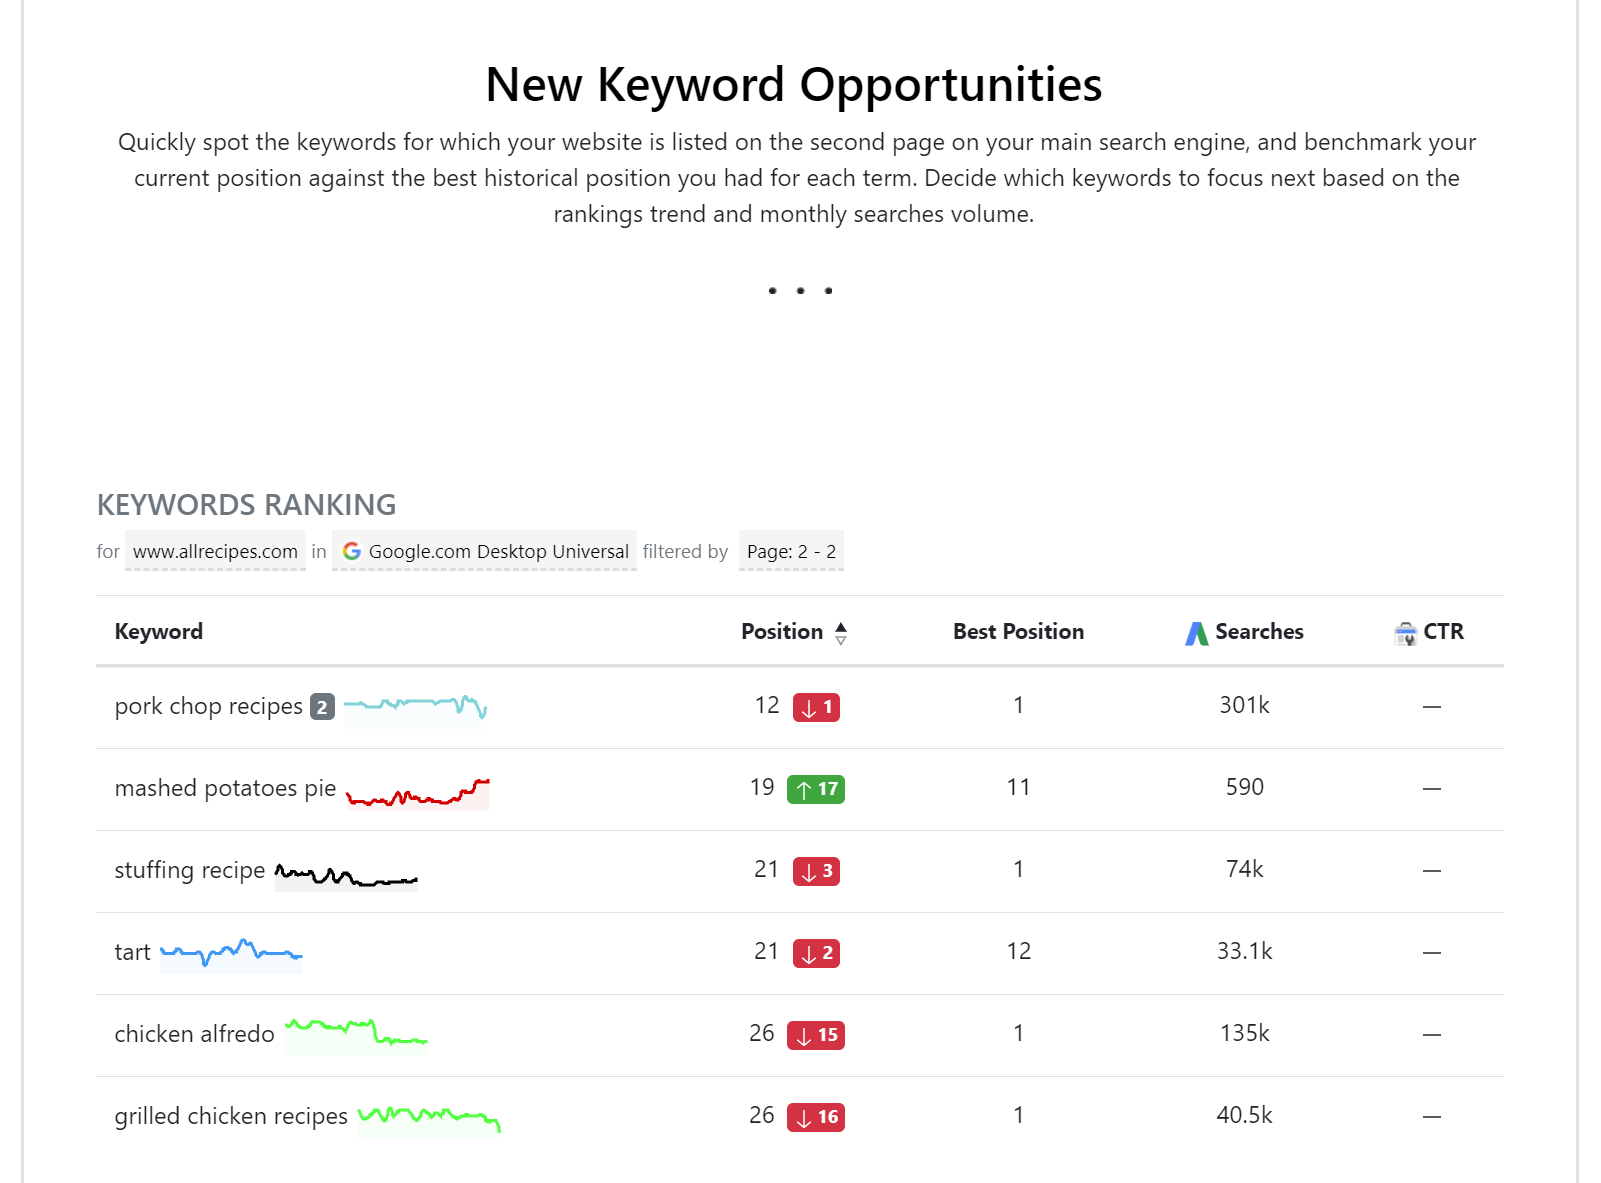 Custom ranking report in AWR focused on keyword ranking opportunities.